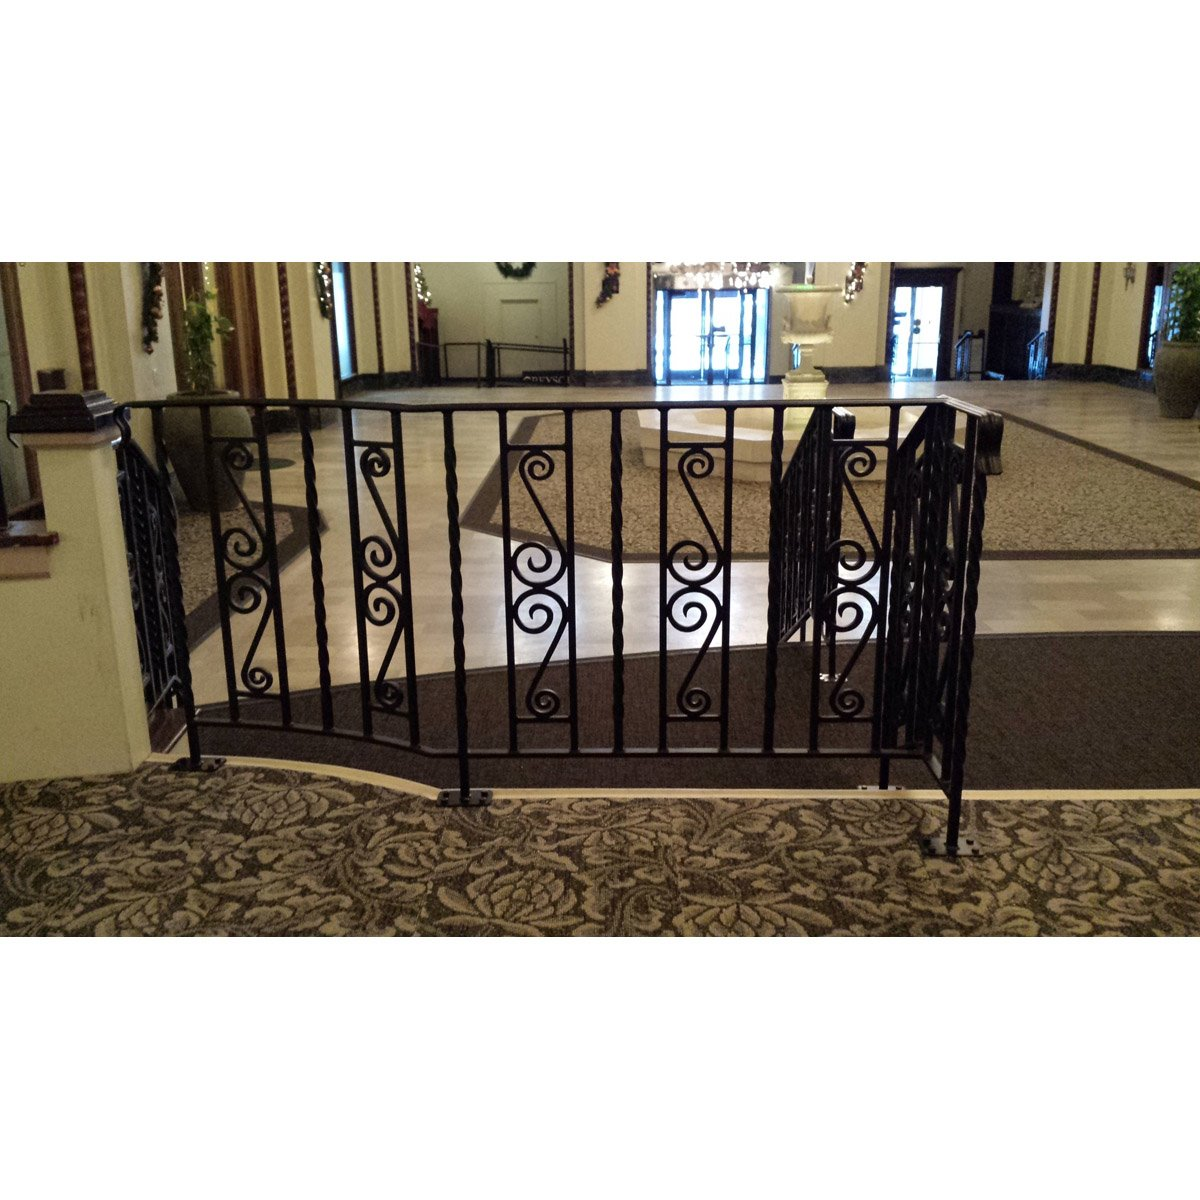 Decorative Scroll Wooden Cap Rail Railing